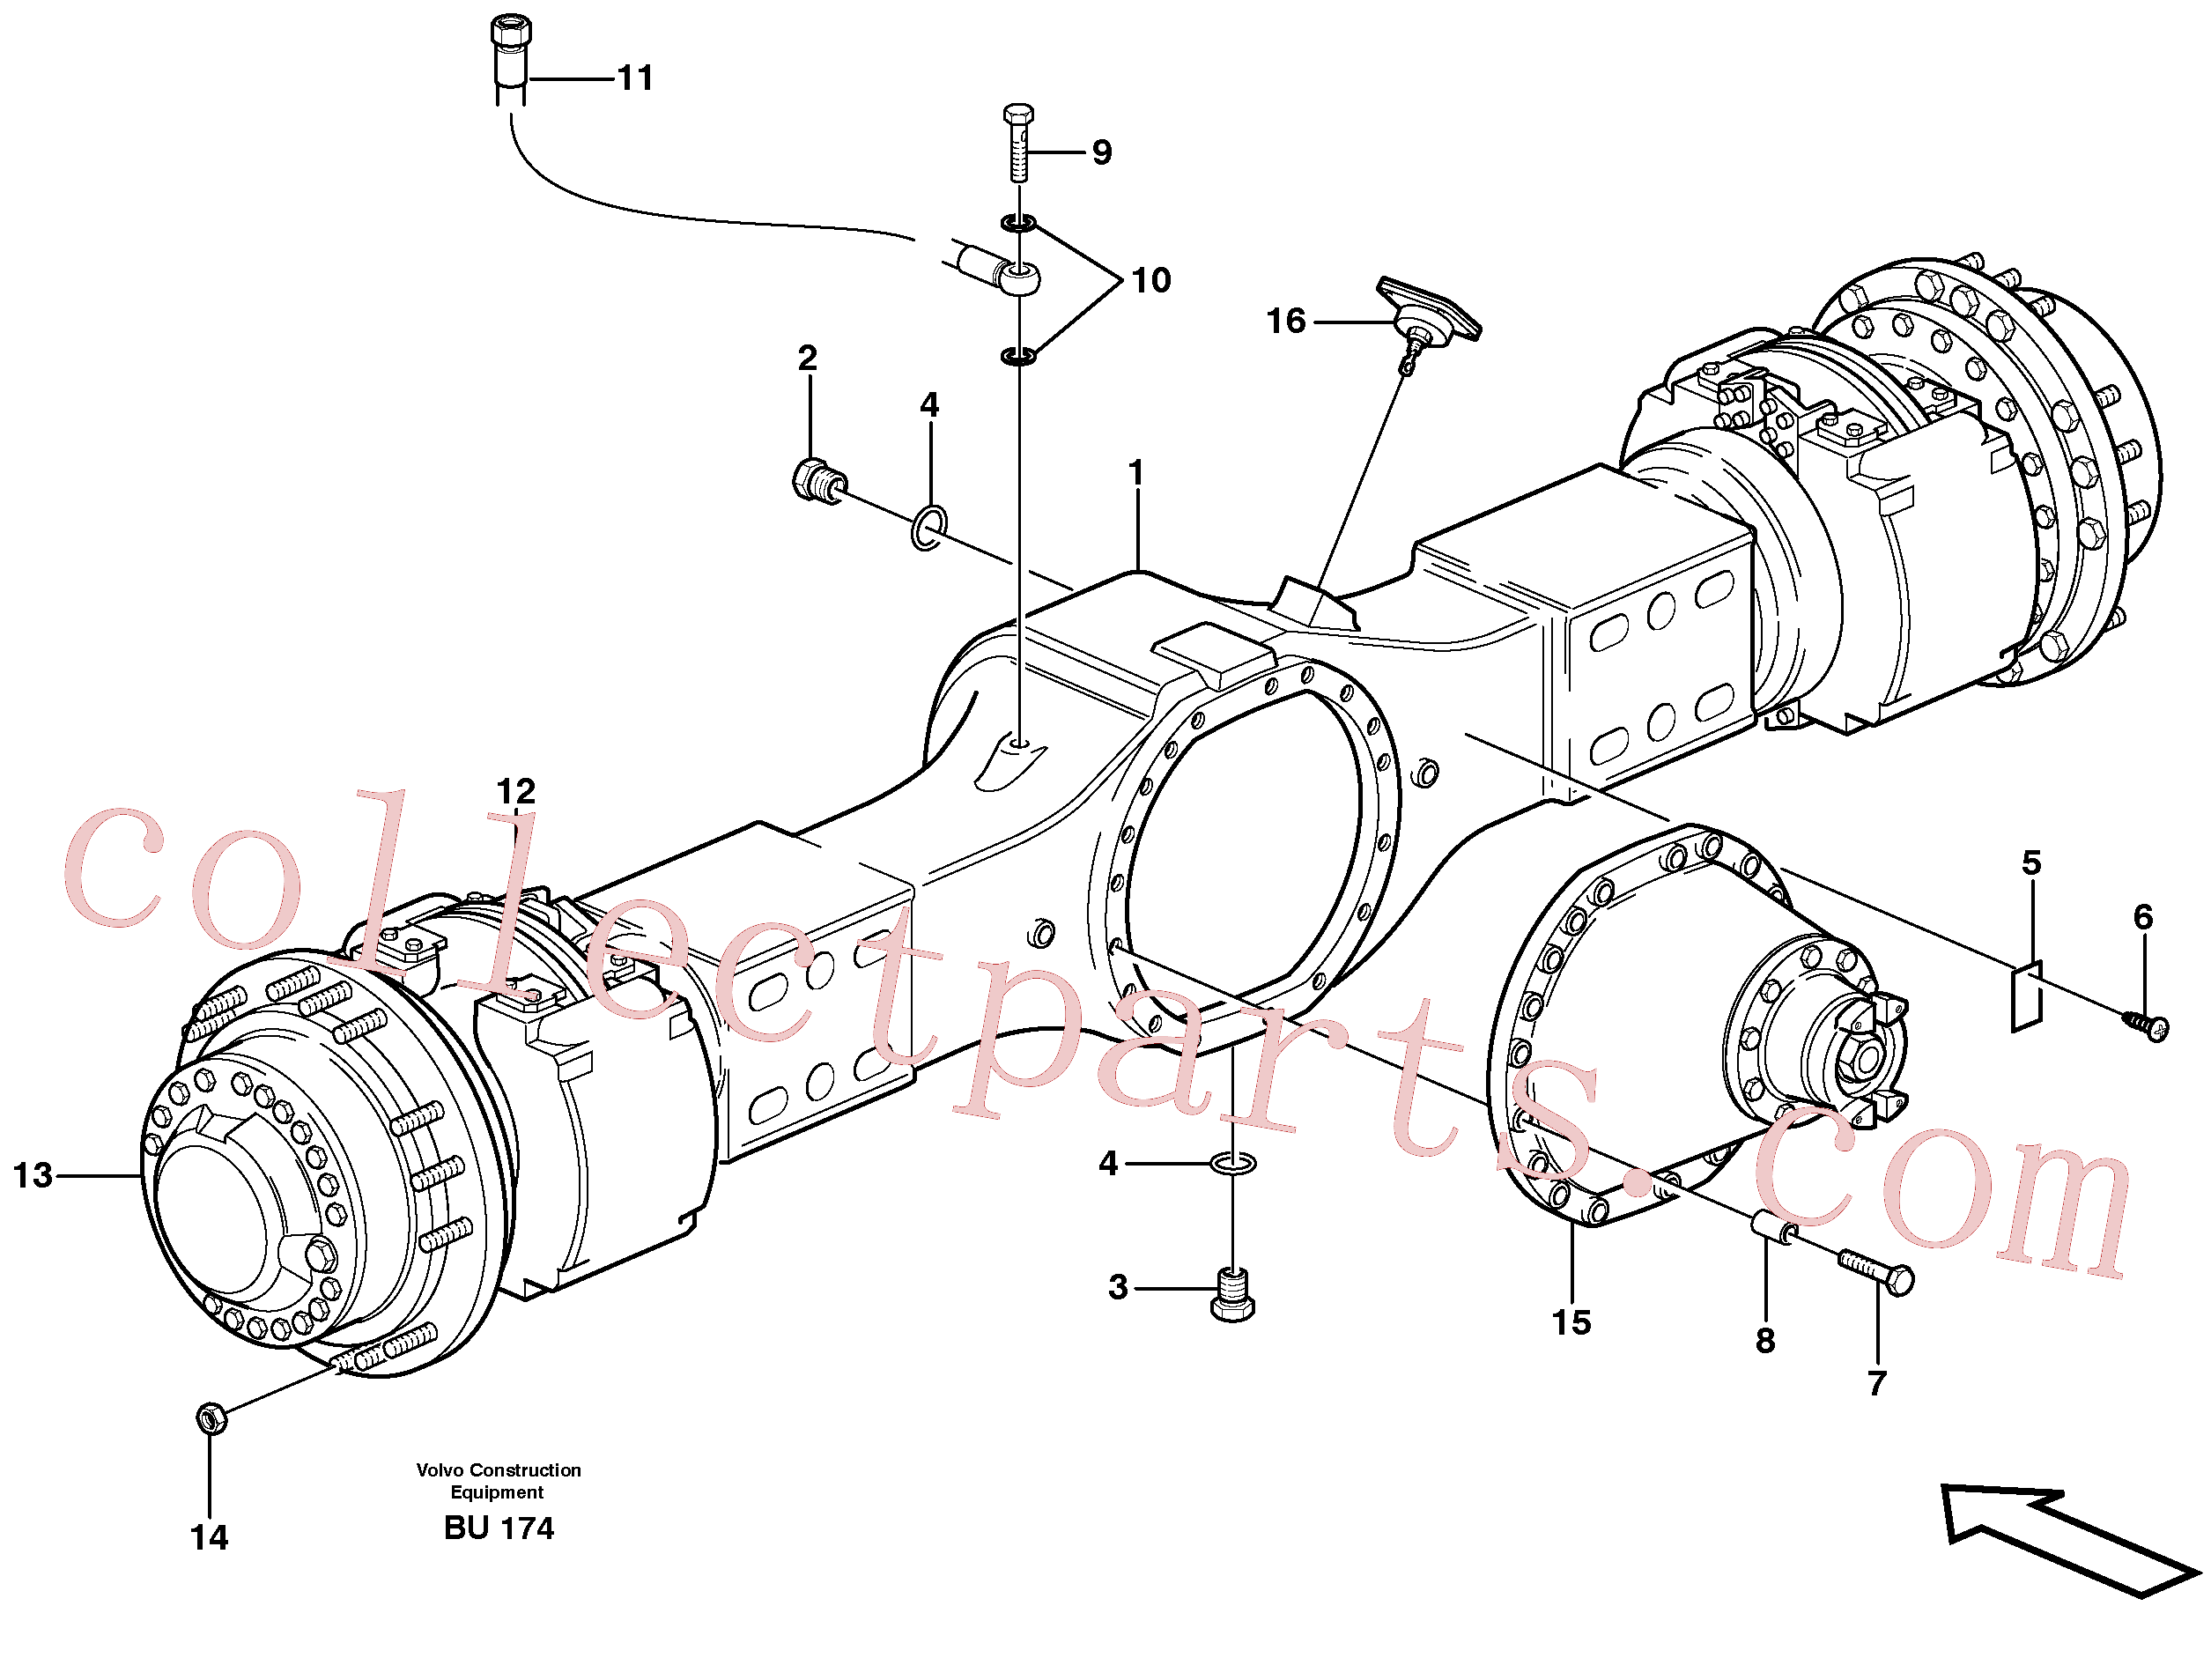 VOE11034156 for Volvo Planetary axle, motor unit(BU174 assembly)